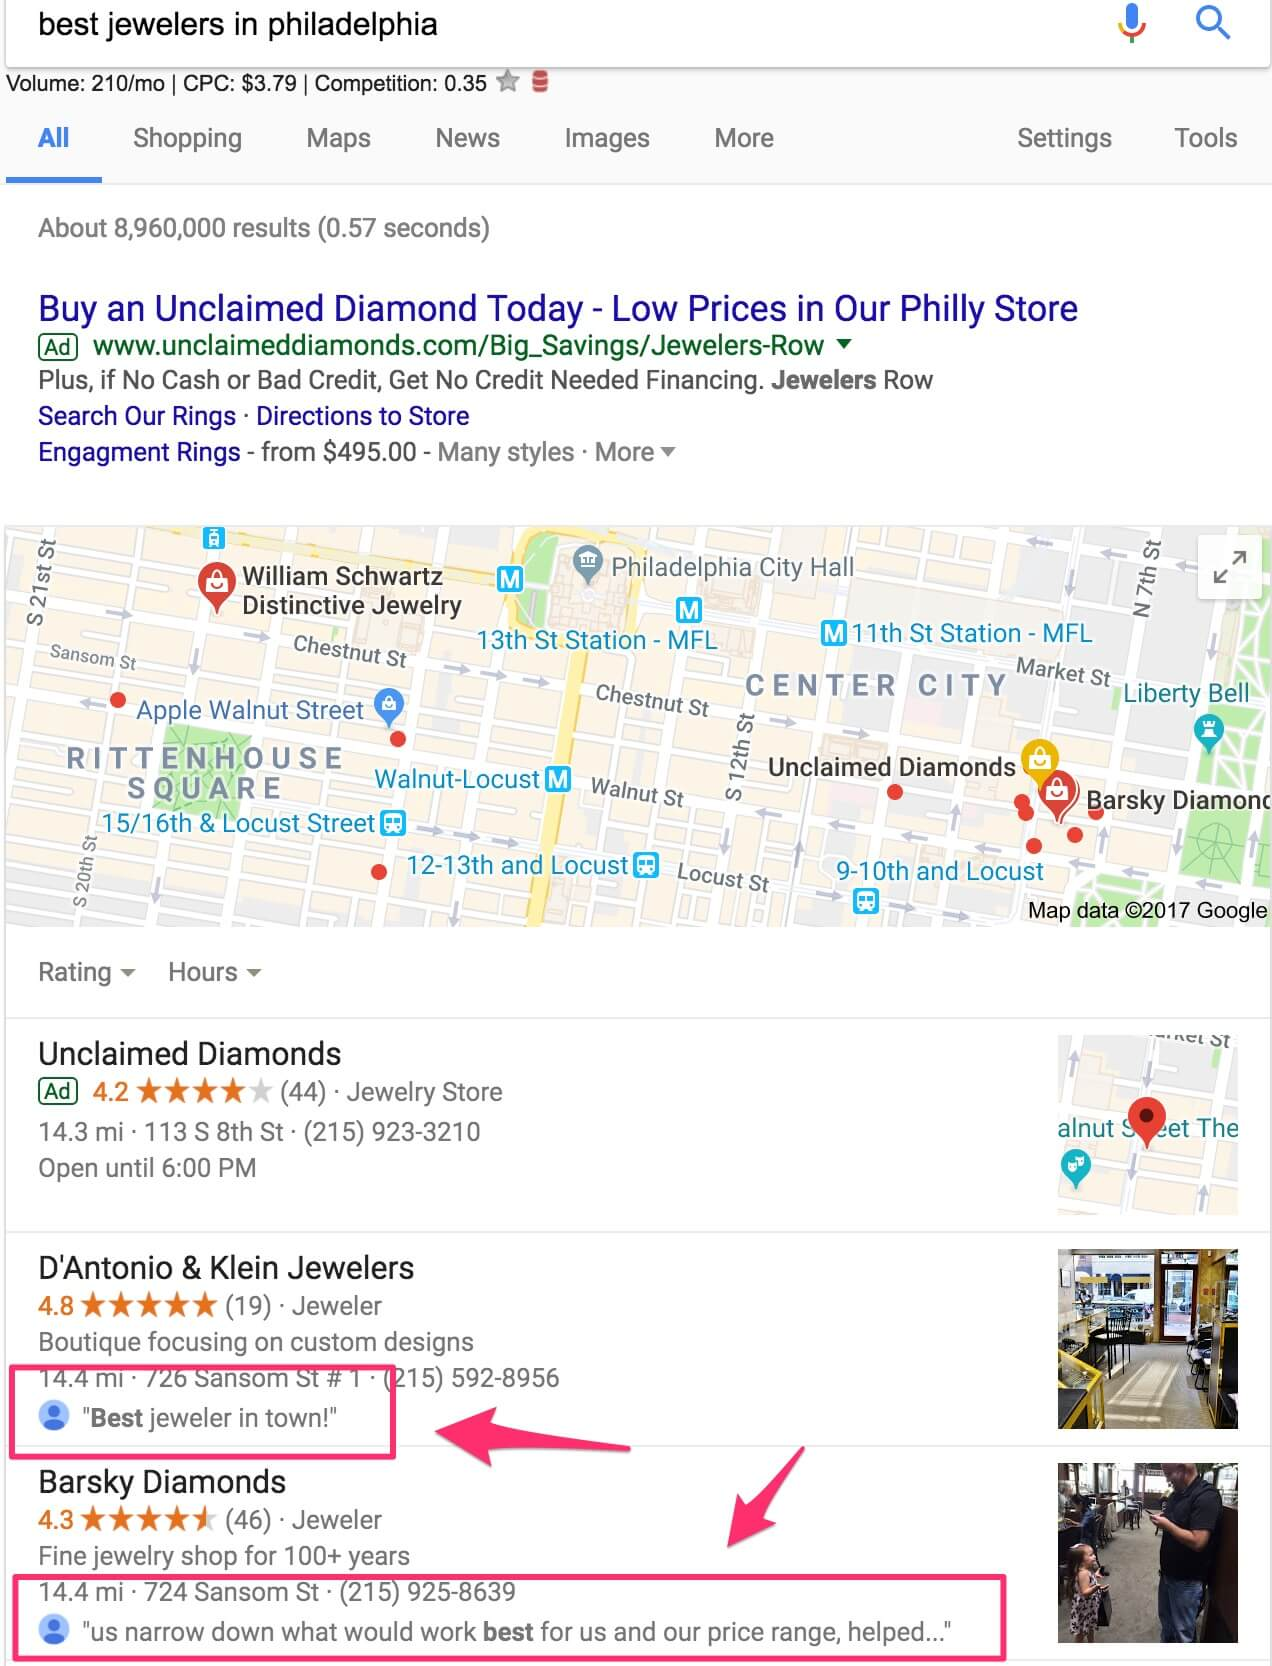 Google Adds Keyword Reviews to Local Maps